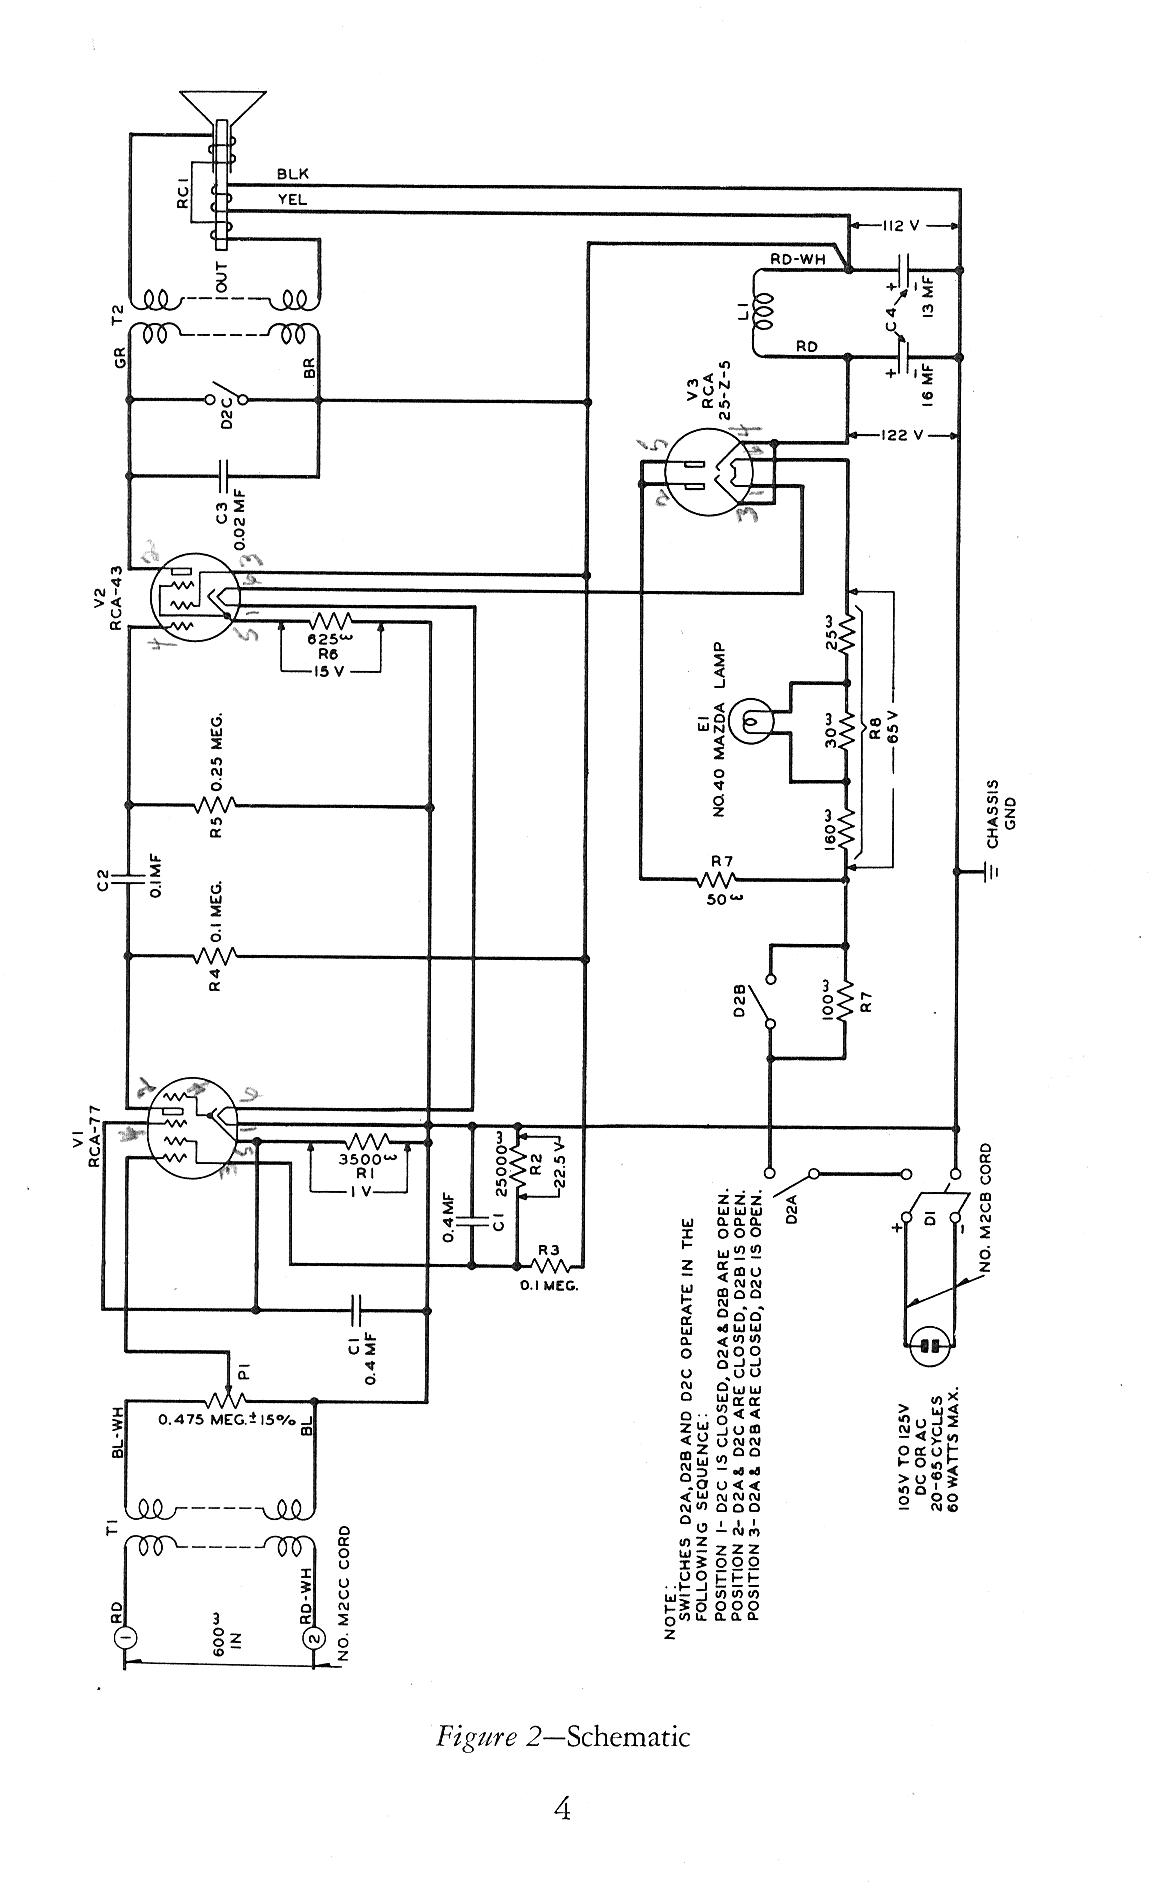 100e_schematic telephone technical references western electric 554 wiring diagram at mifinder.co